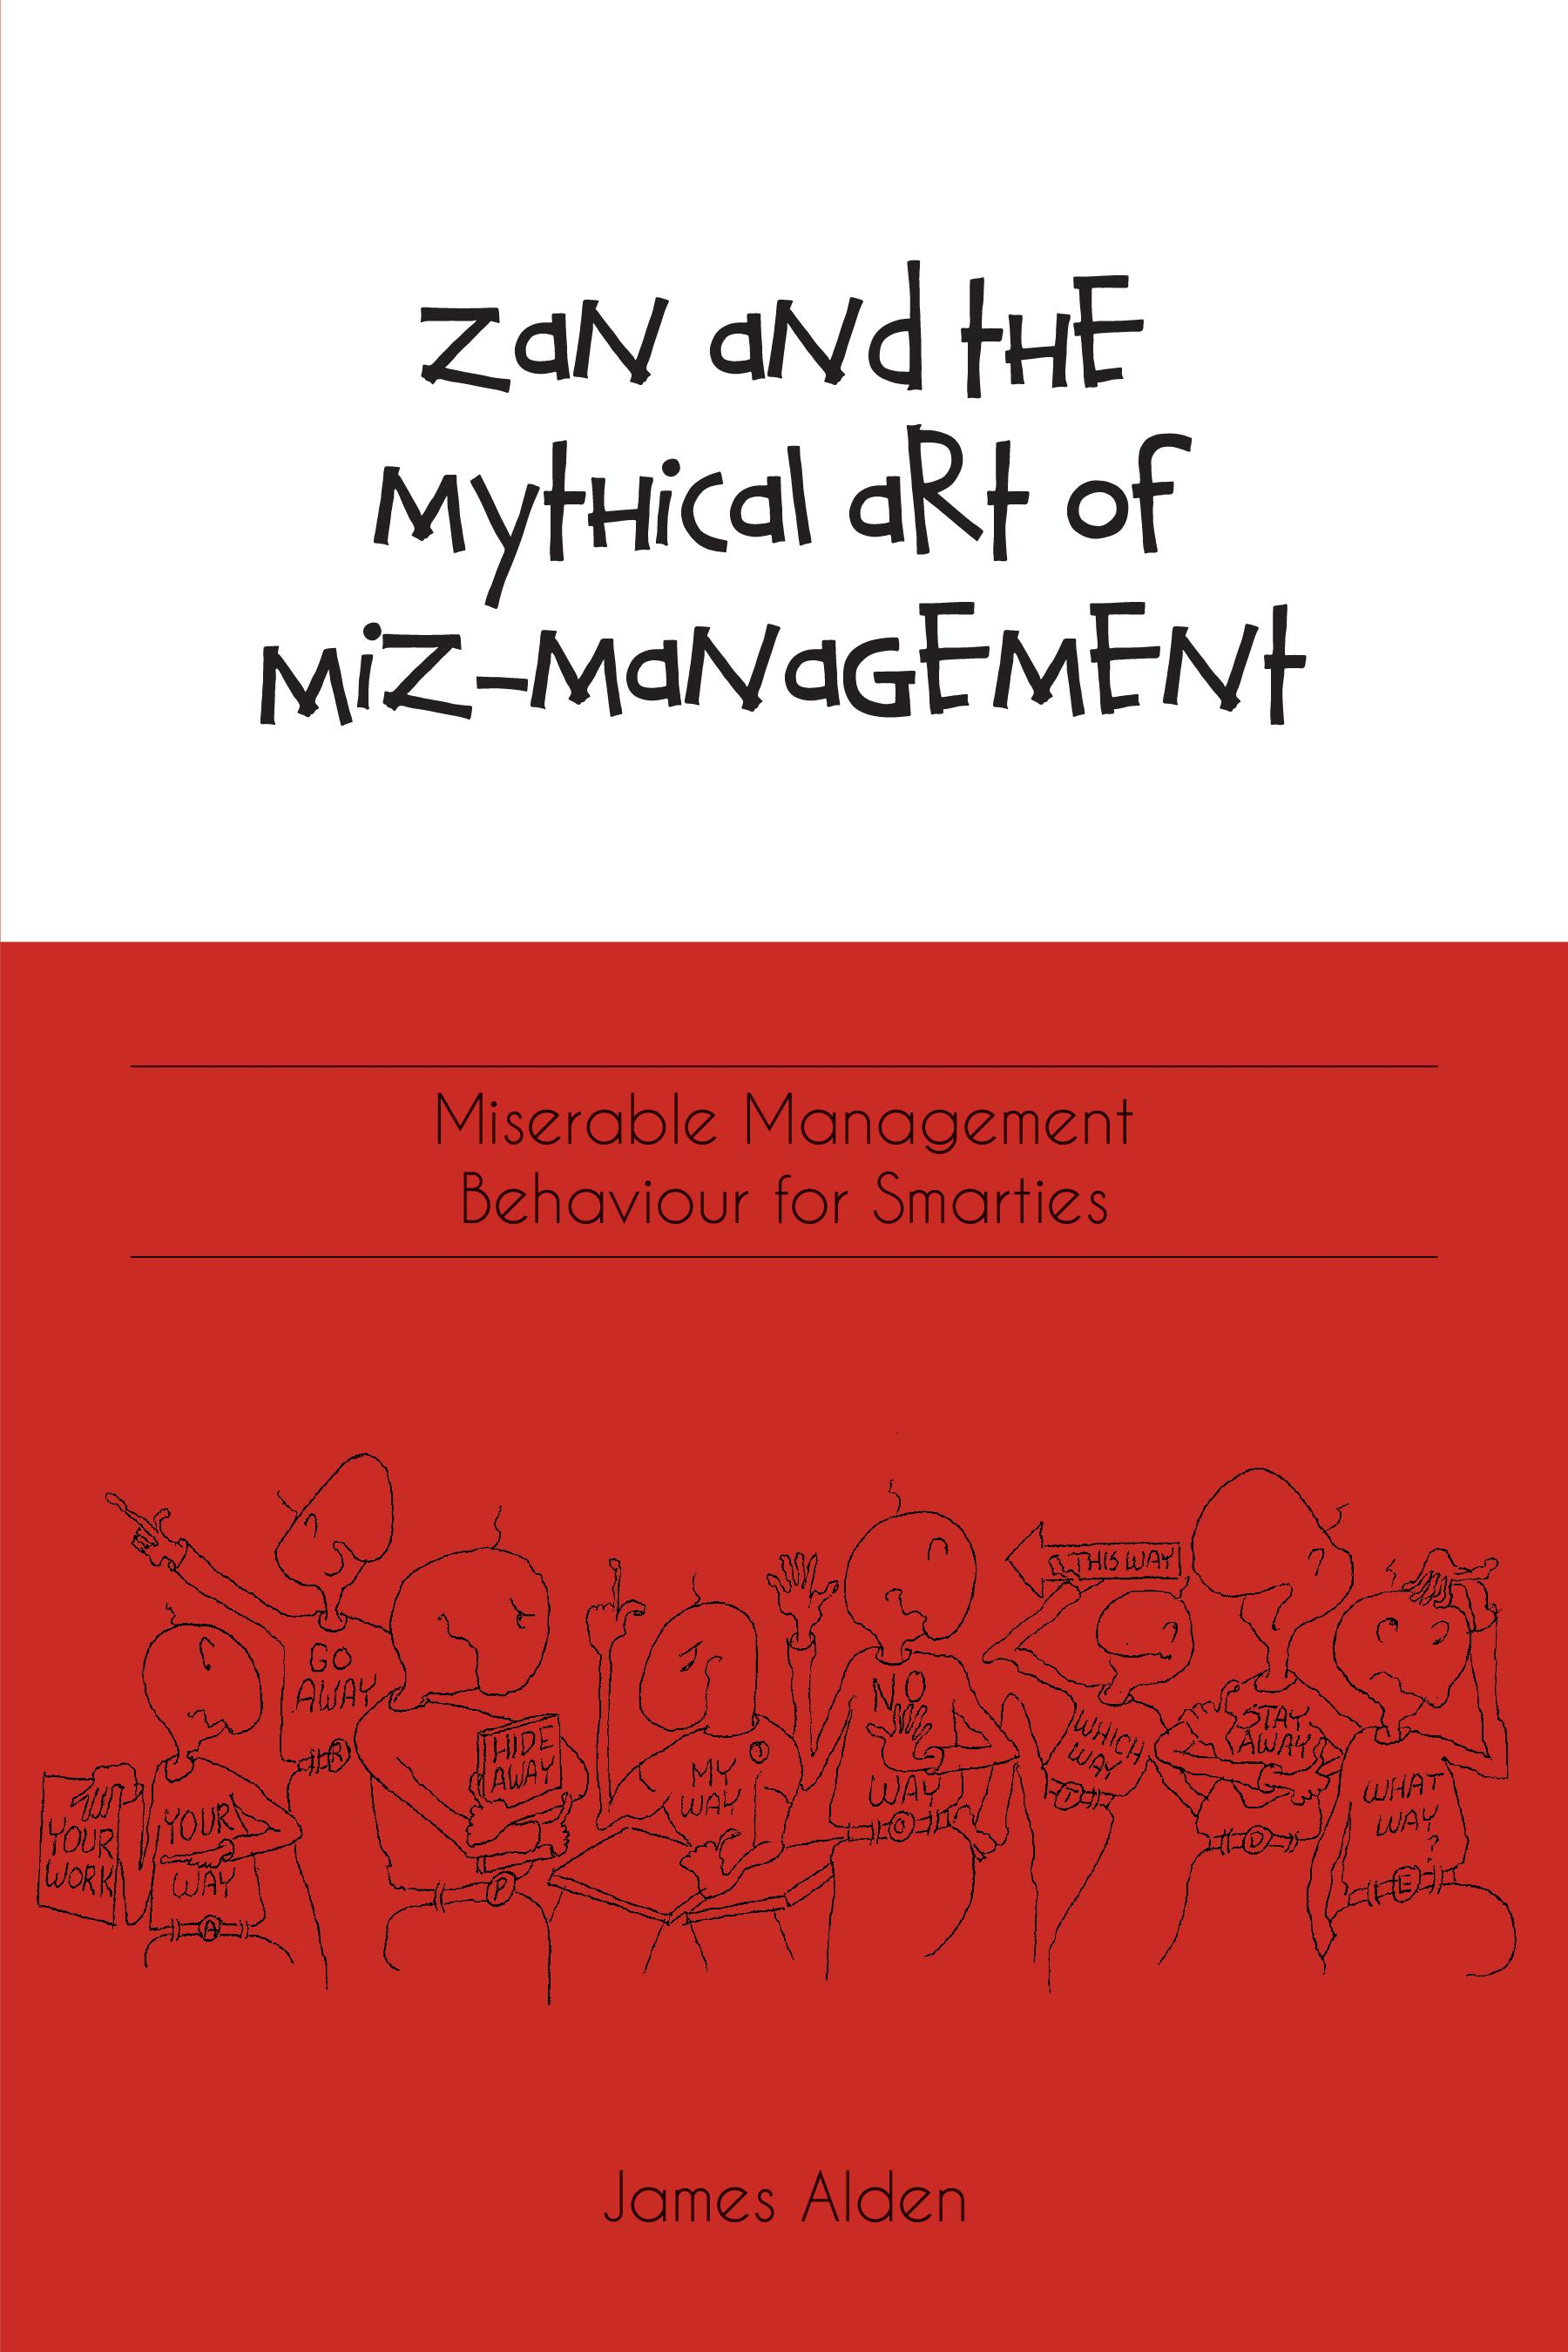 Zan and the Mythical Art of Miz-Management: Miserable Management Behaviour for Smarties EB9781770979642